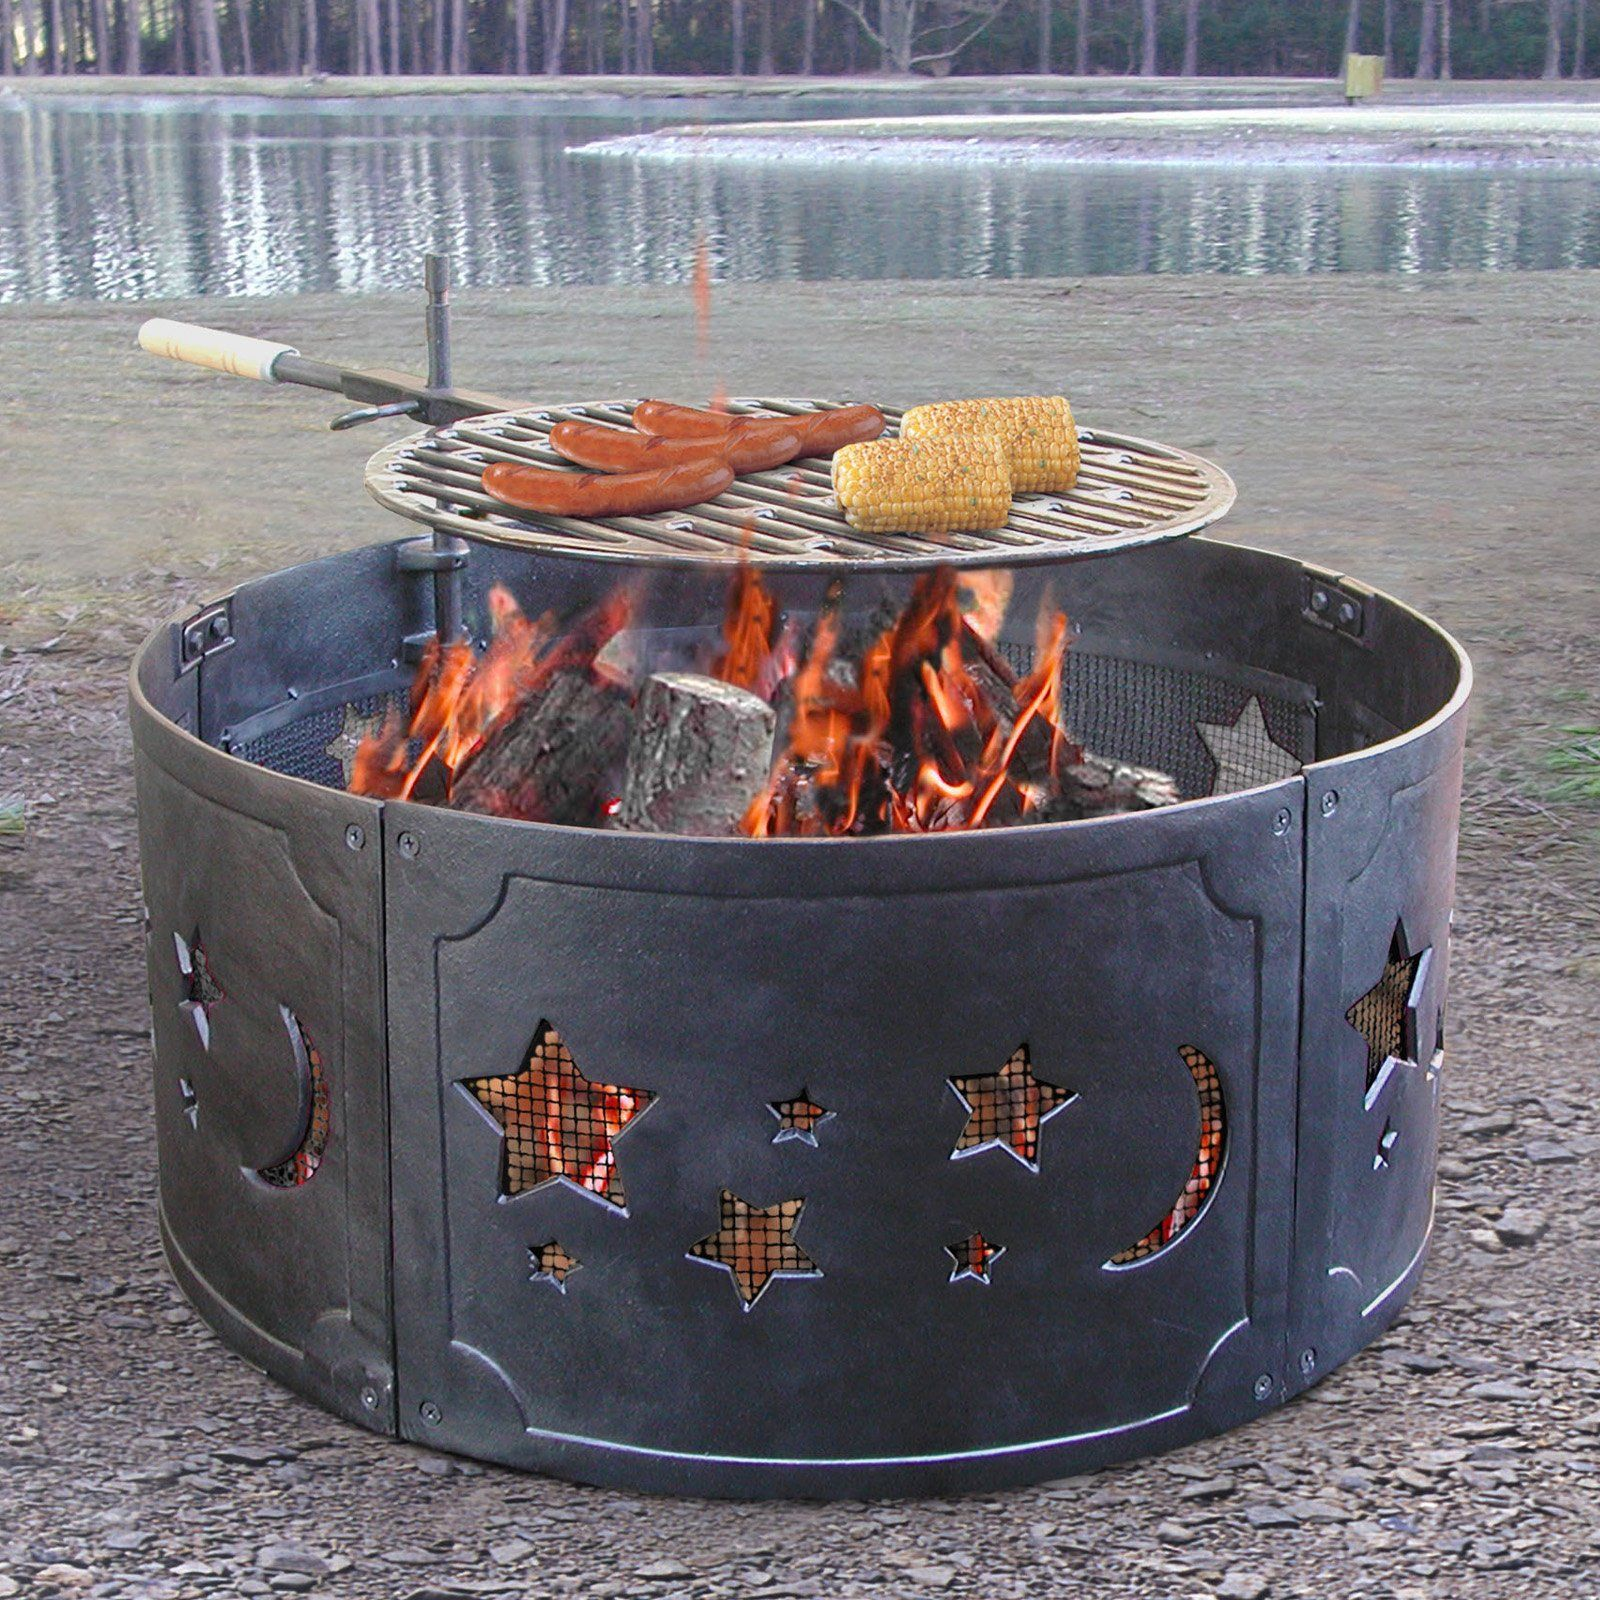 Have To Have It Landmann Big Sky Firering Stars And Moons Fire Pit Fire Pit Ring Fire Pit Iron Fire Pit